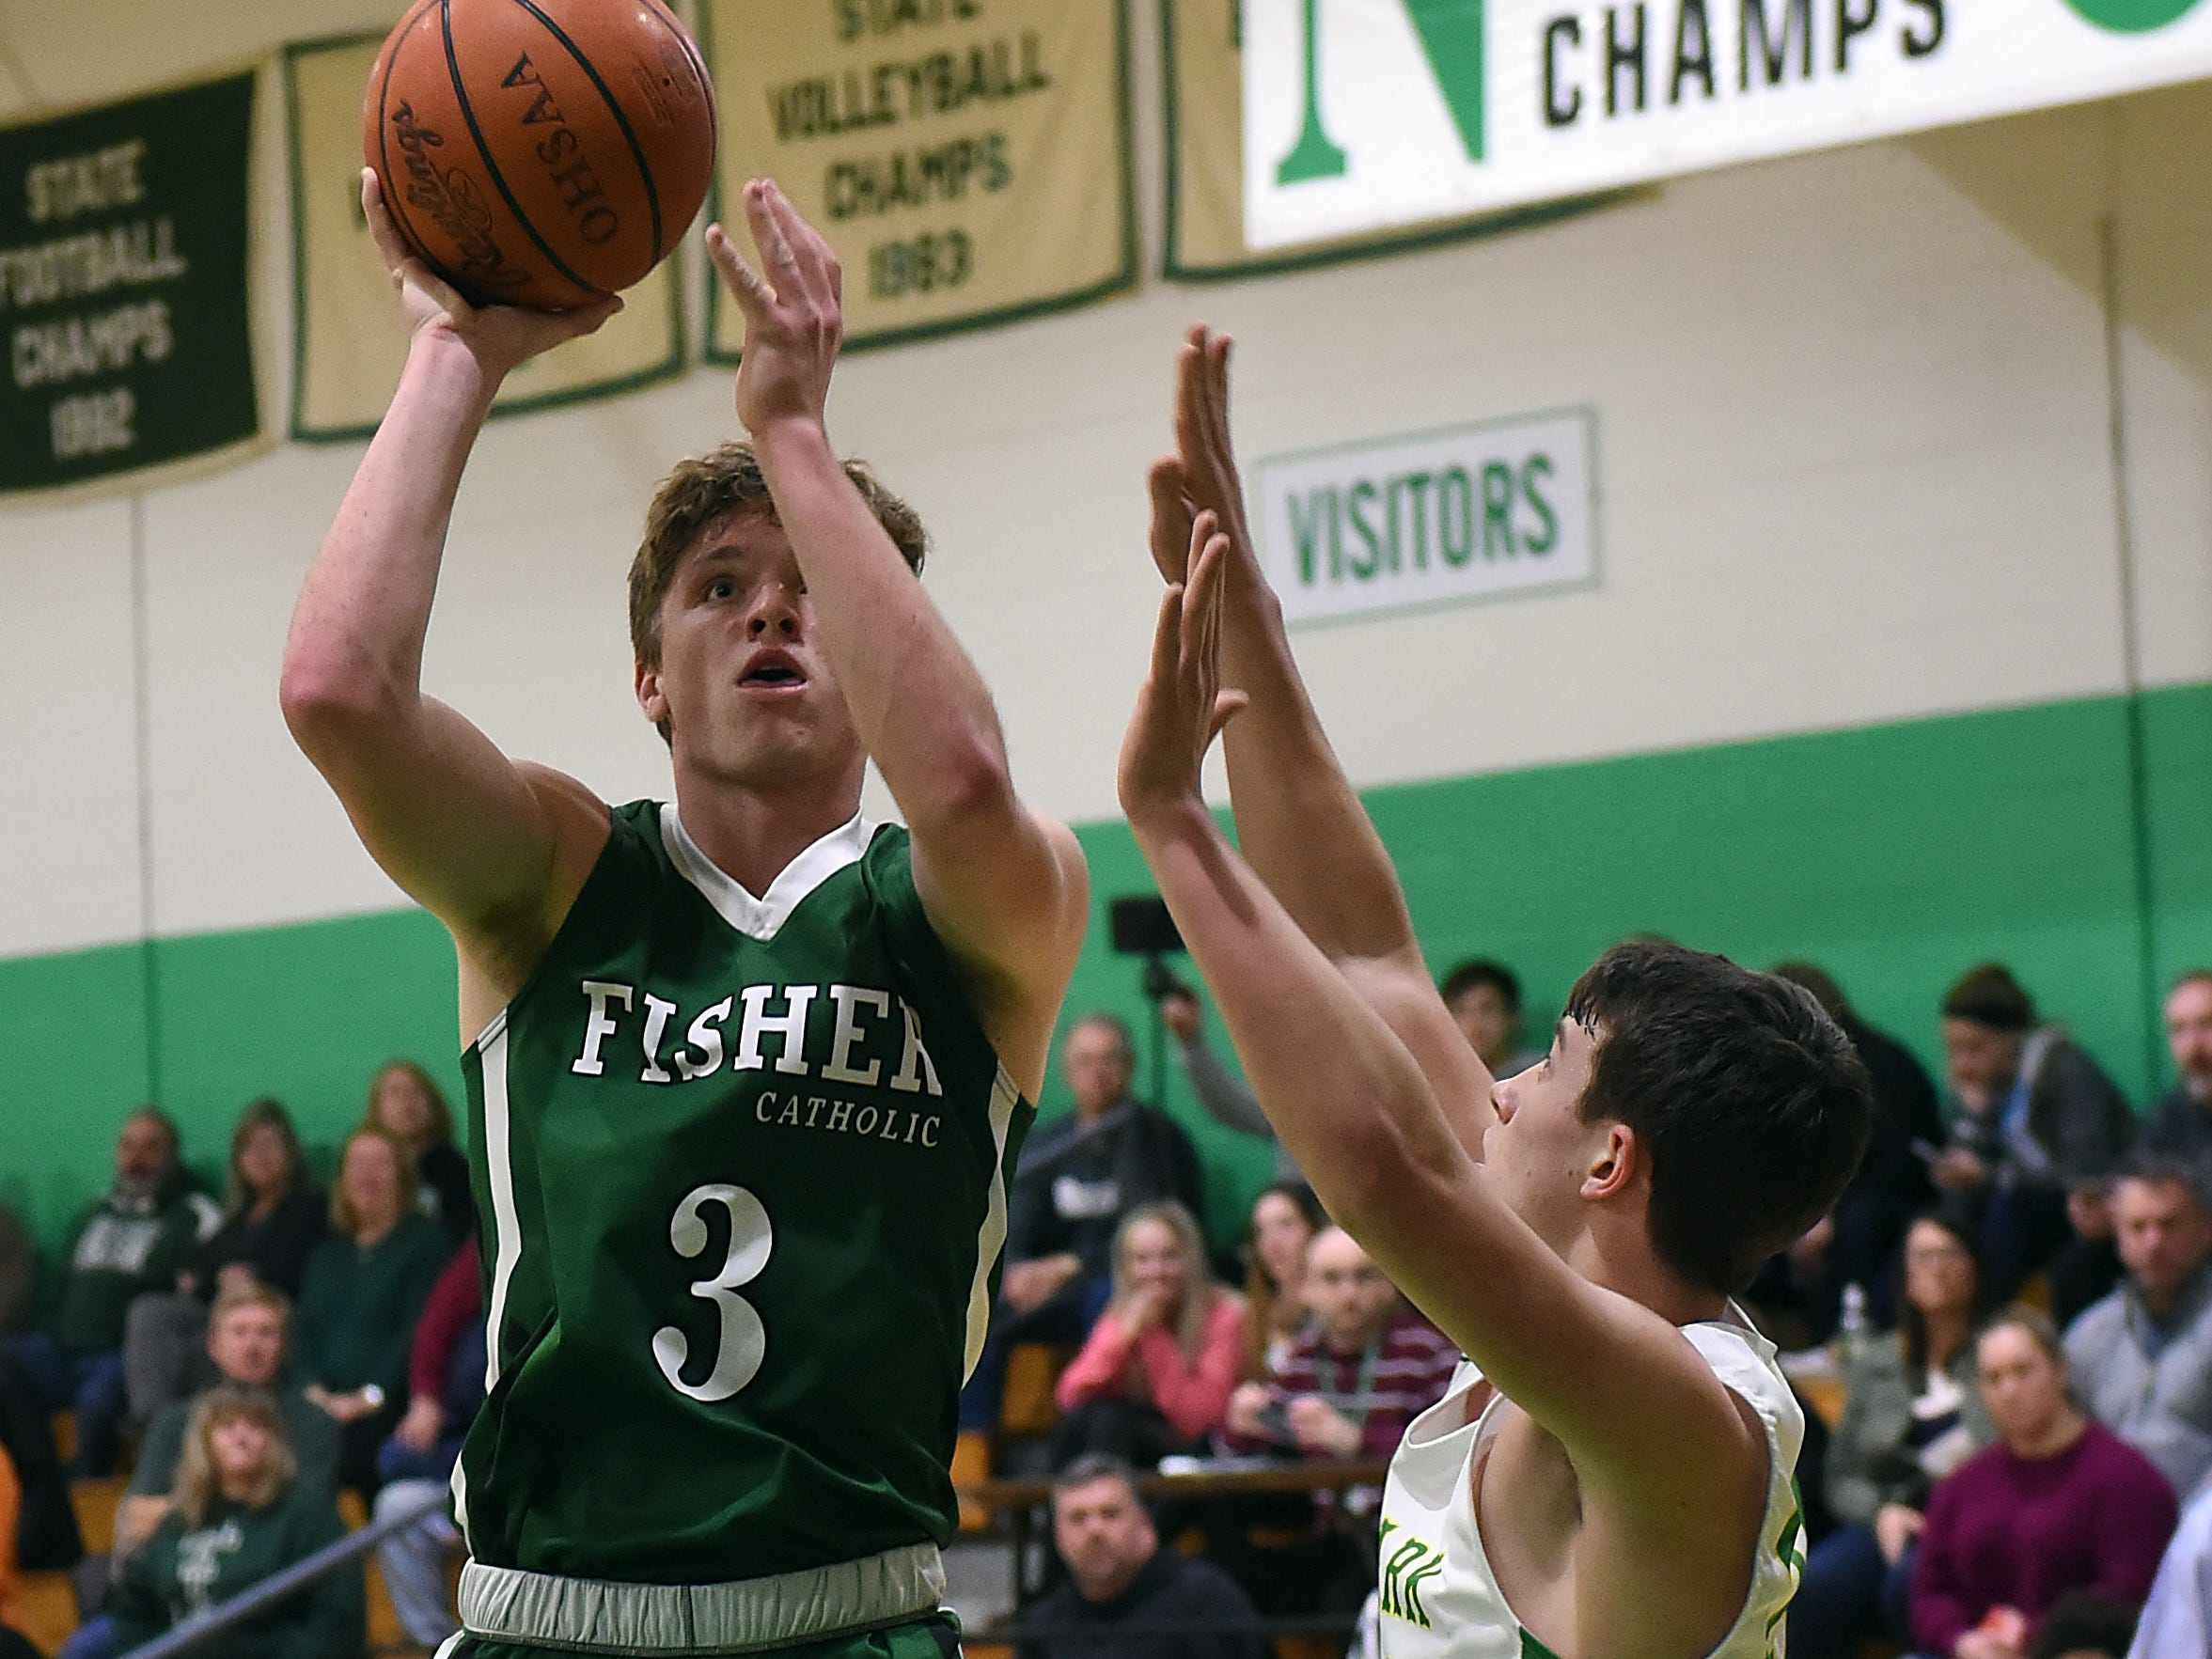 Fisher Catholic senior Collin McCrady shoots against defense from Newark Catholic senior Granger Evans during Monday night's game at Newark Catholic. The Irish won with a buzzer-beating 3-pointer defeating the Green Wave 52-49.